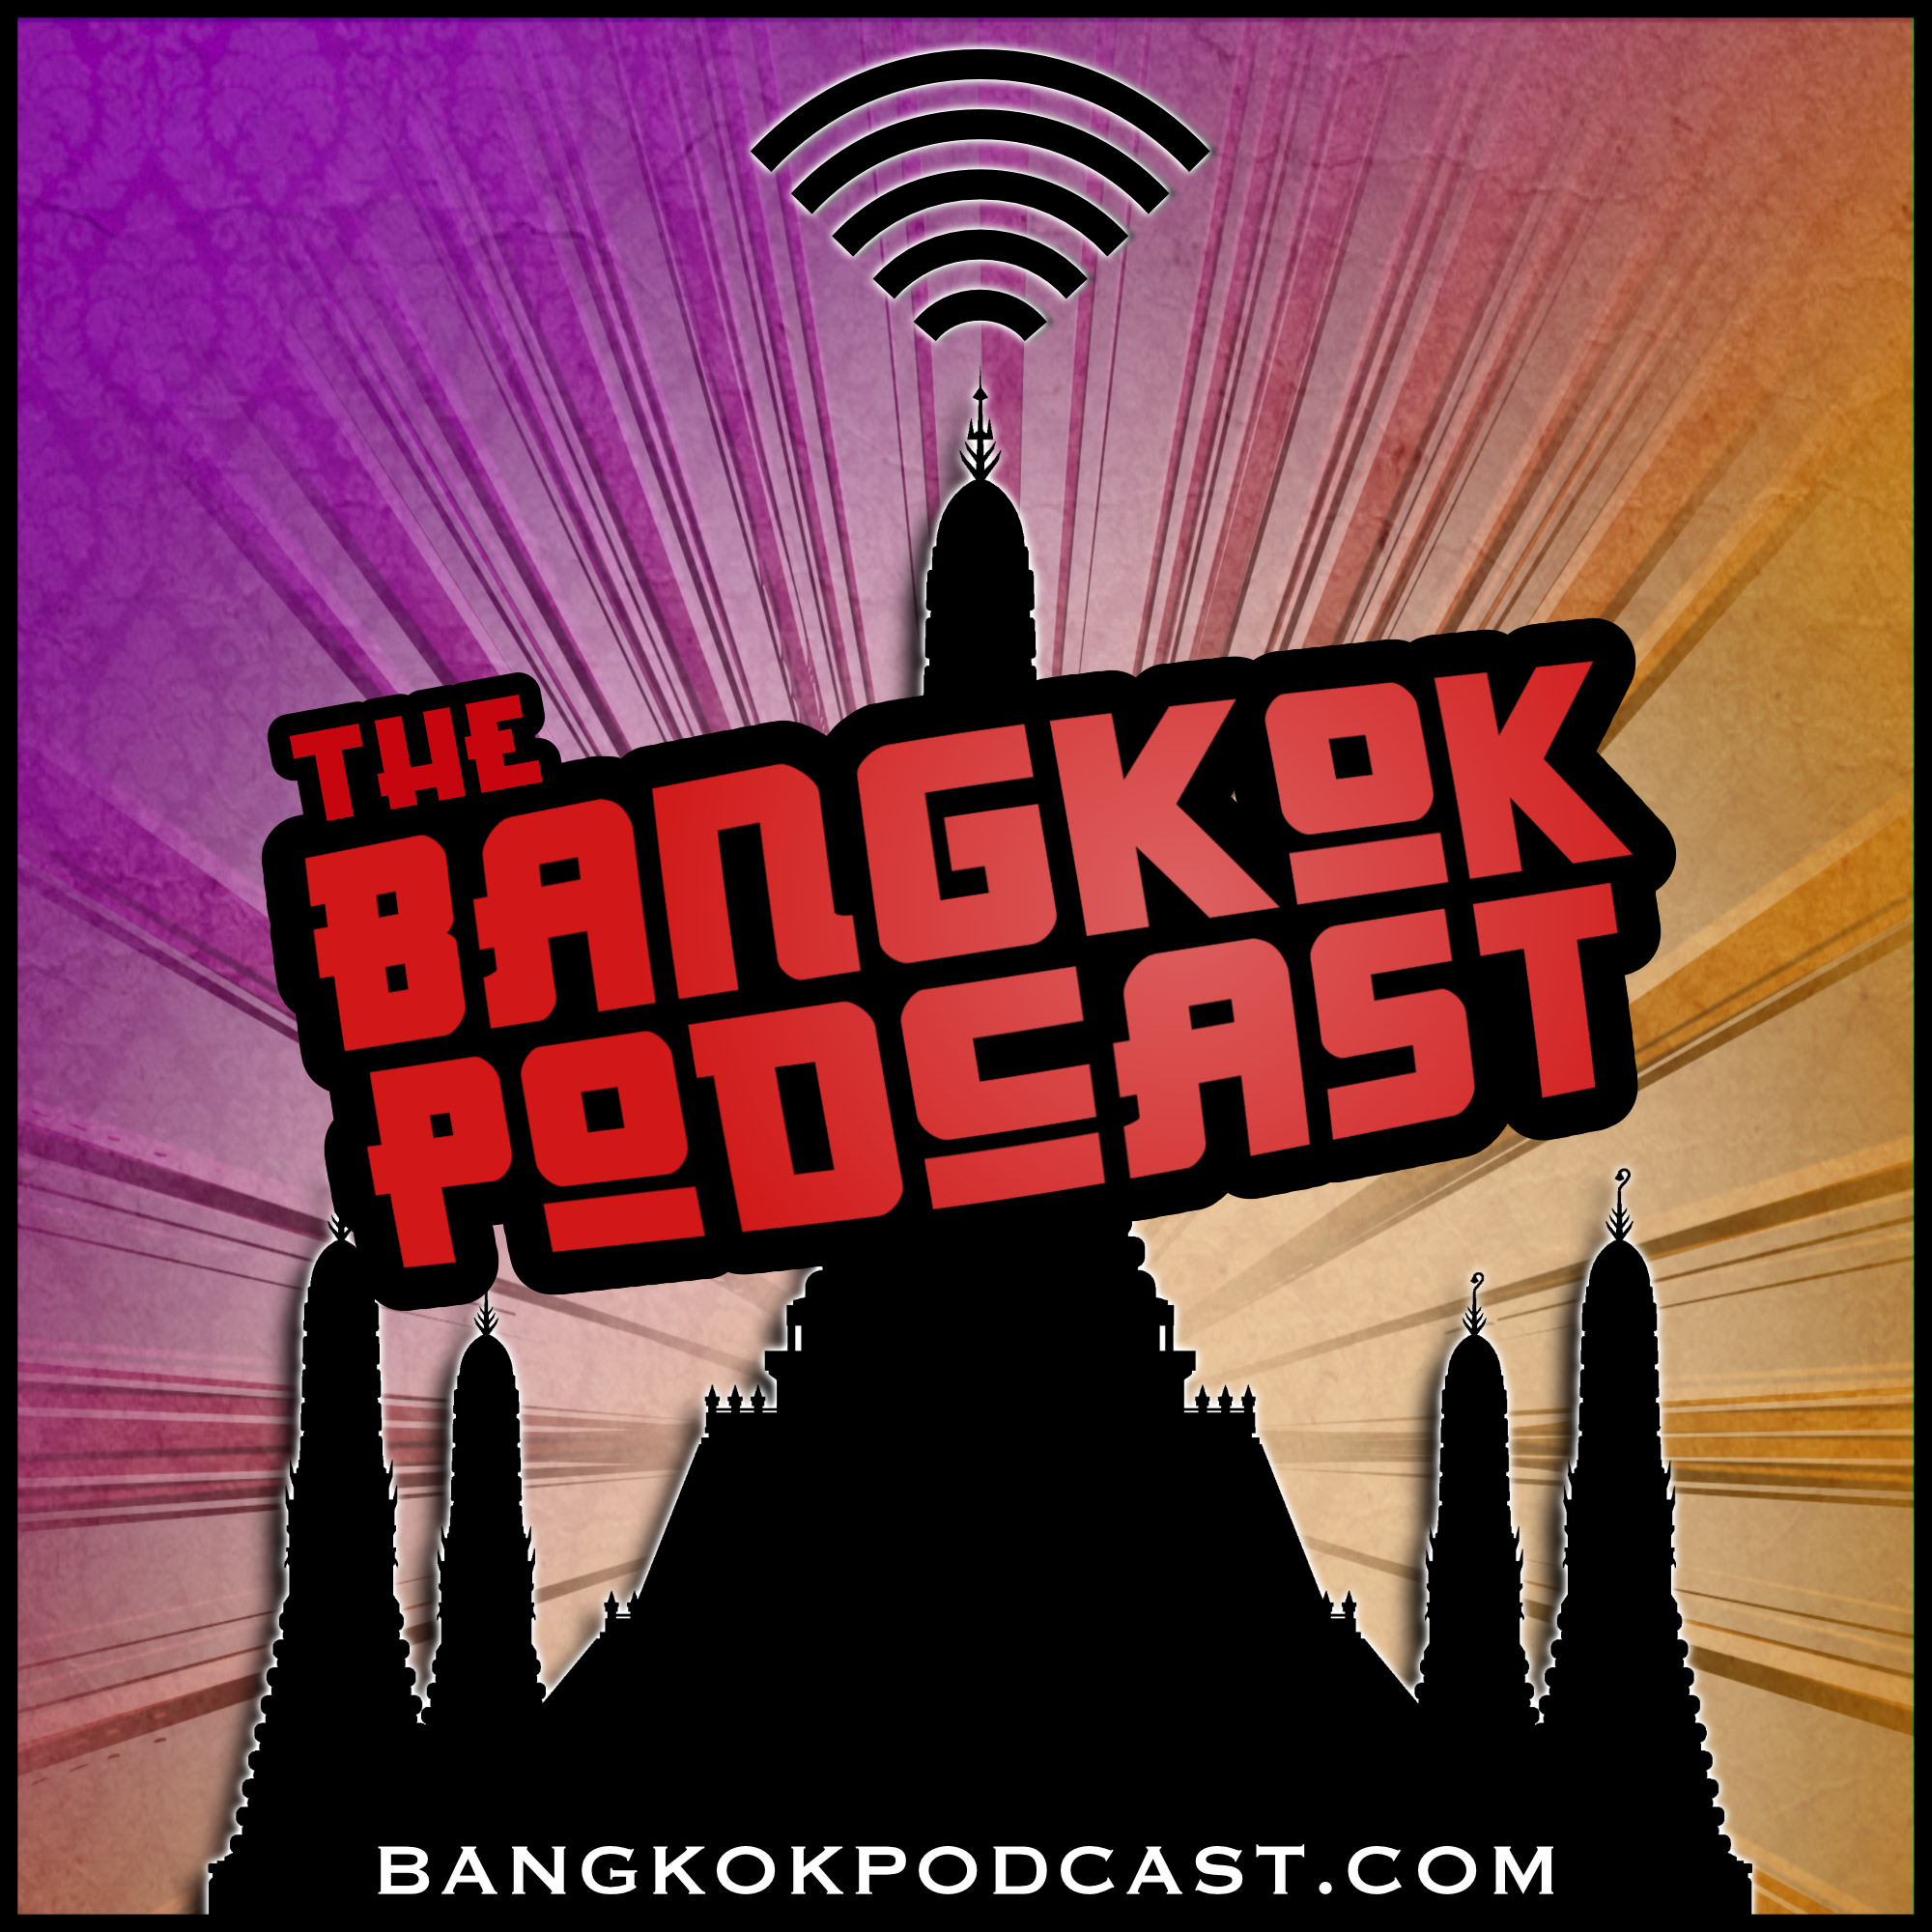 The Bangkok Podcast | Conversations on Life in Thailand's Buzzing Capital